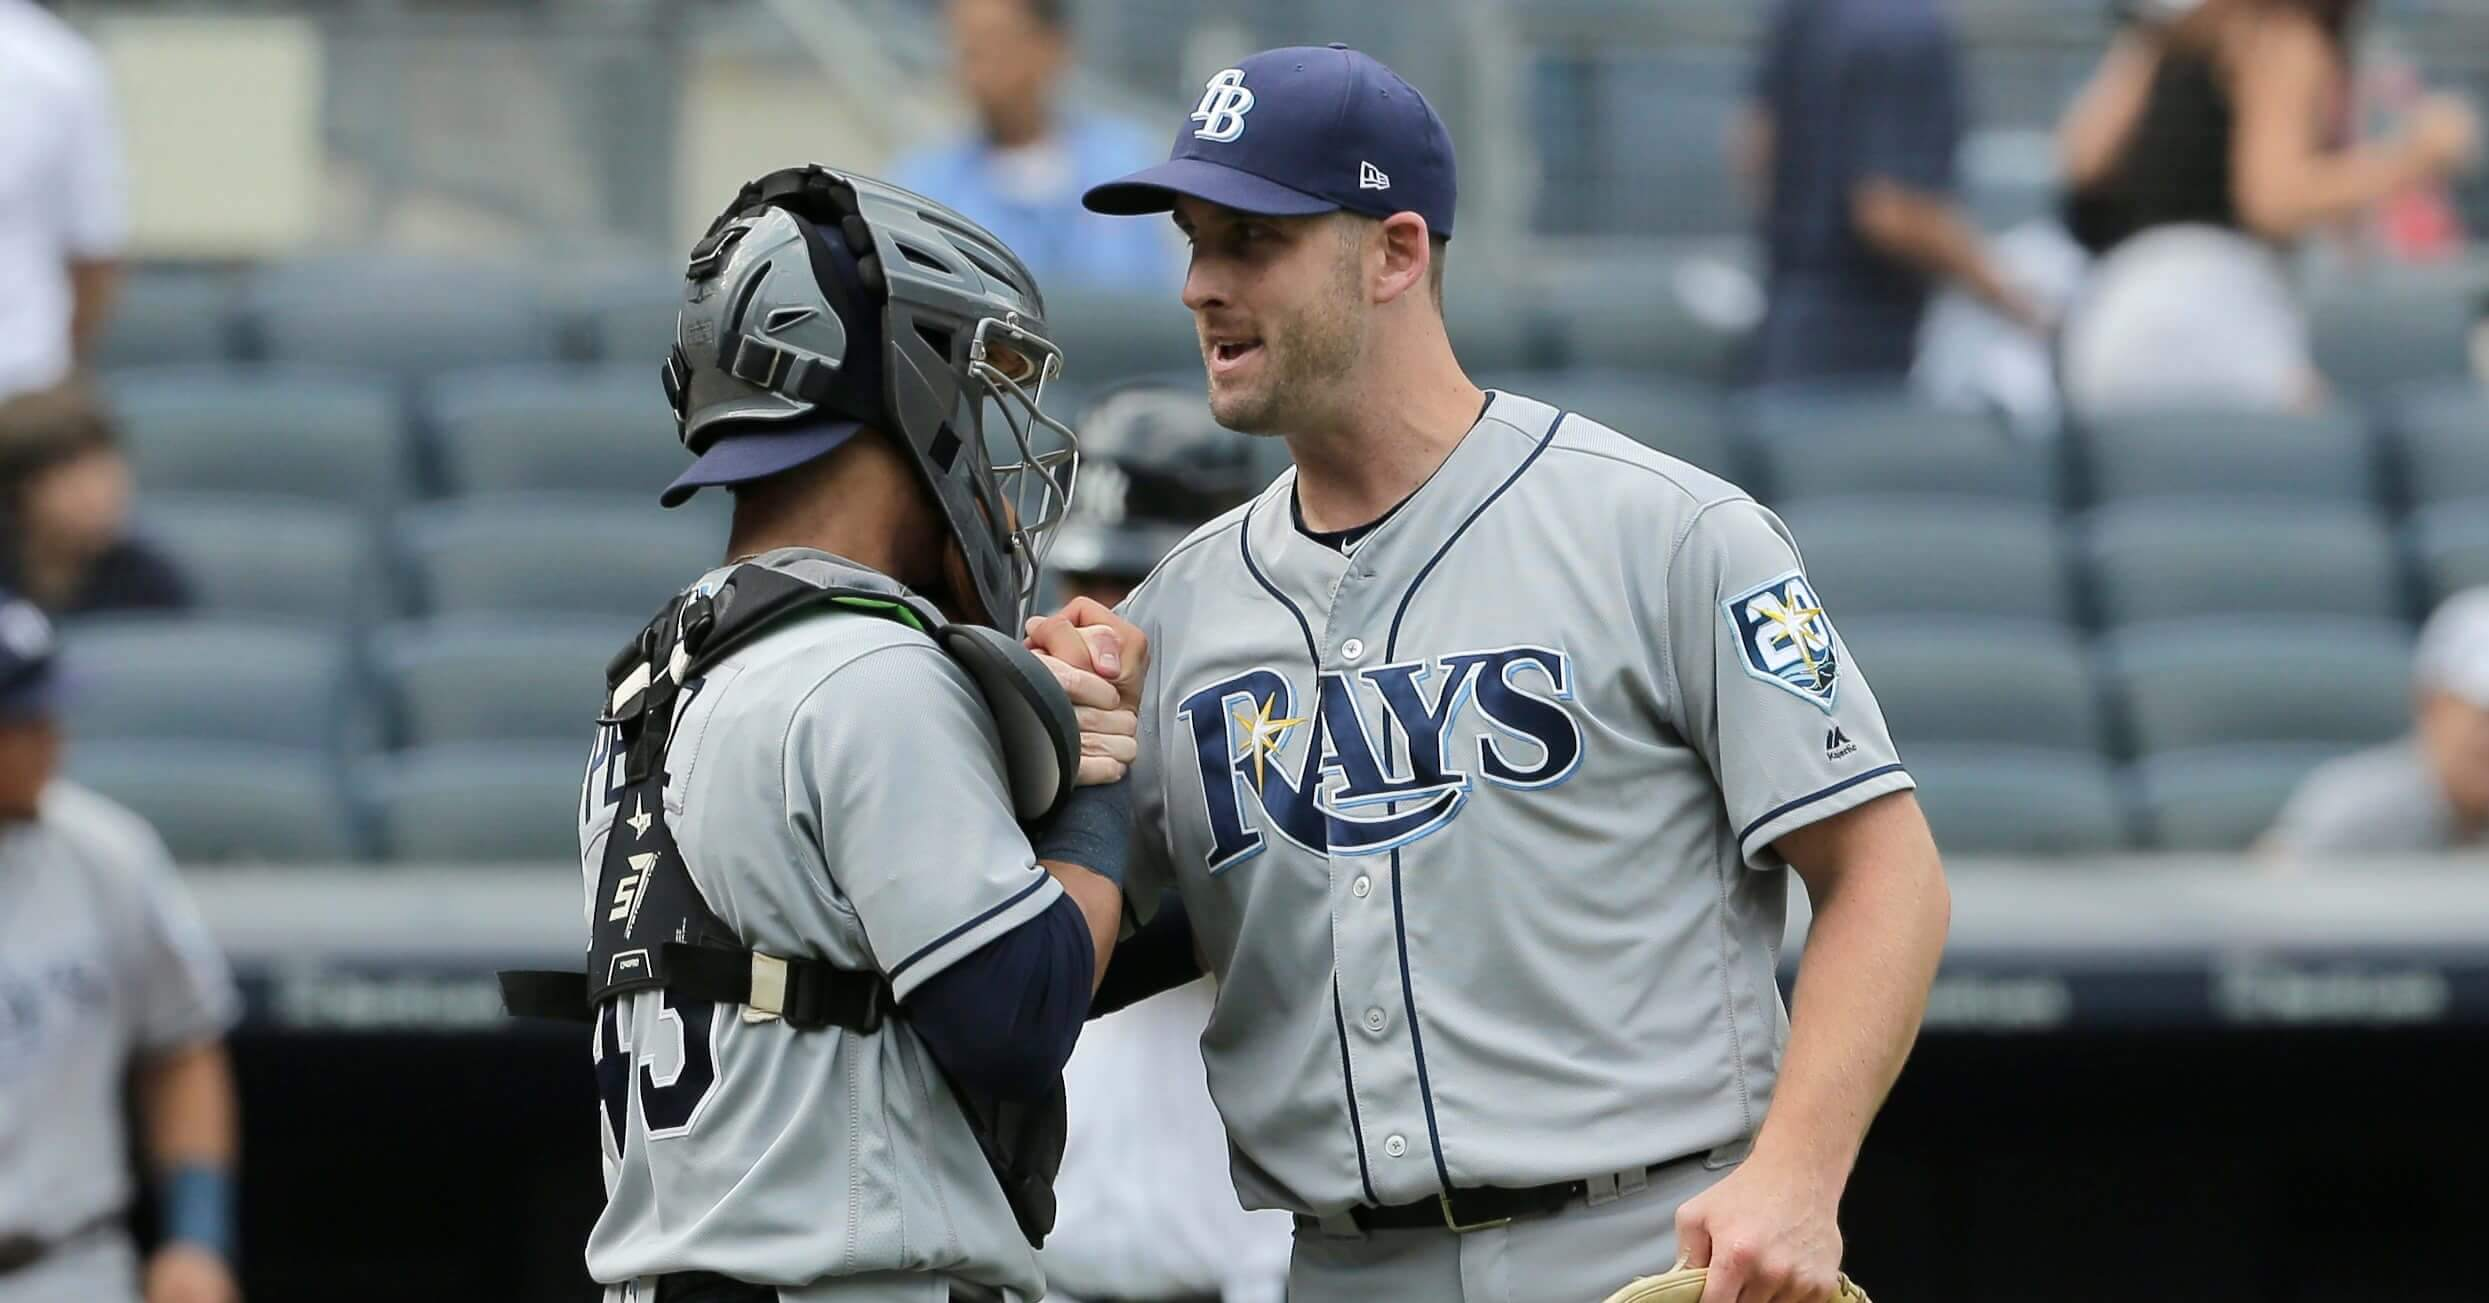 Tampa Bay Rays relief pitcher Adam Kolarek, right, and catcher Michael Perez celebrate after the ninth inning of a baseball game against the New York Yankees at Yankee Stadium Thursday